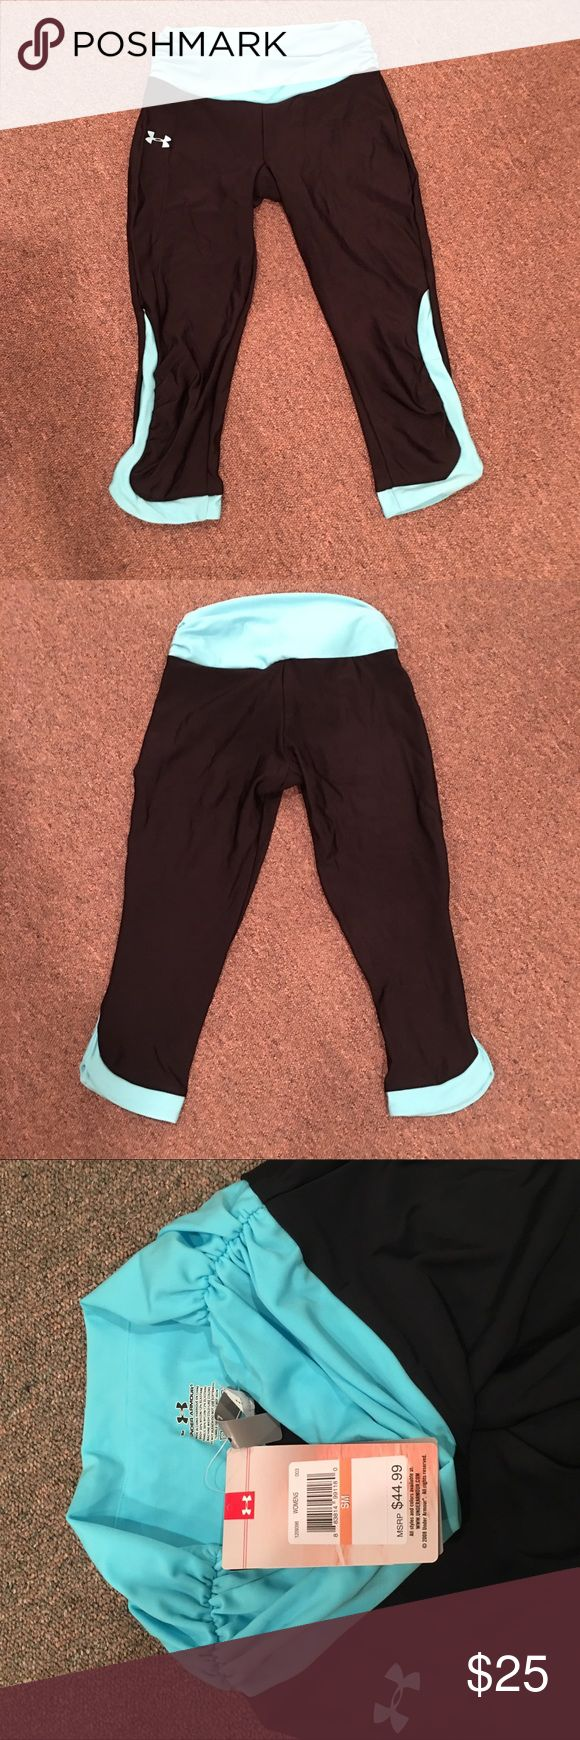 NWTs Under Armour heatgear compression capris! These are amazing quality and brand new!! These are perfect for working out, wicking sweat away from the body!  Get your body feeling great, while looking great!  Let me know if you ha e any questions! Under Armour Pants Capris